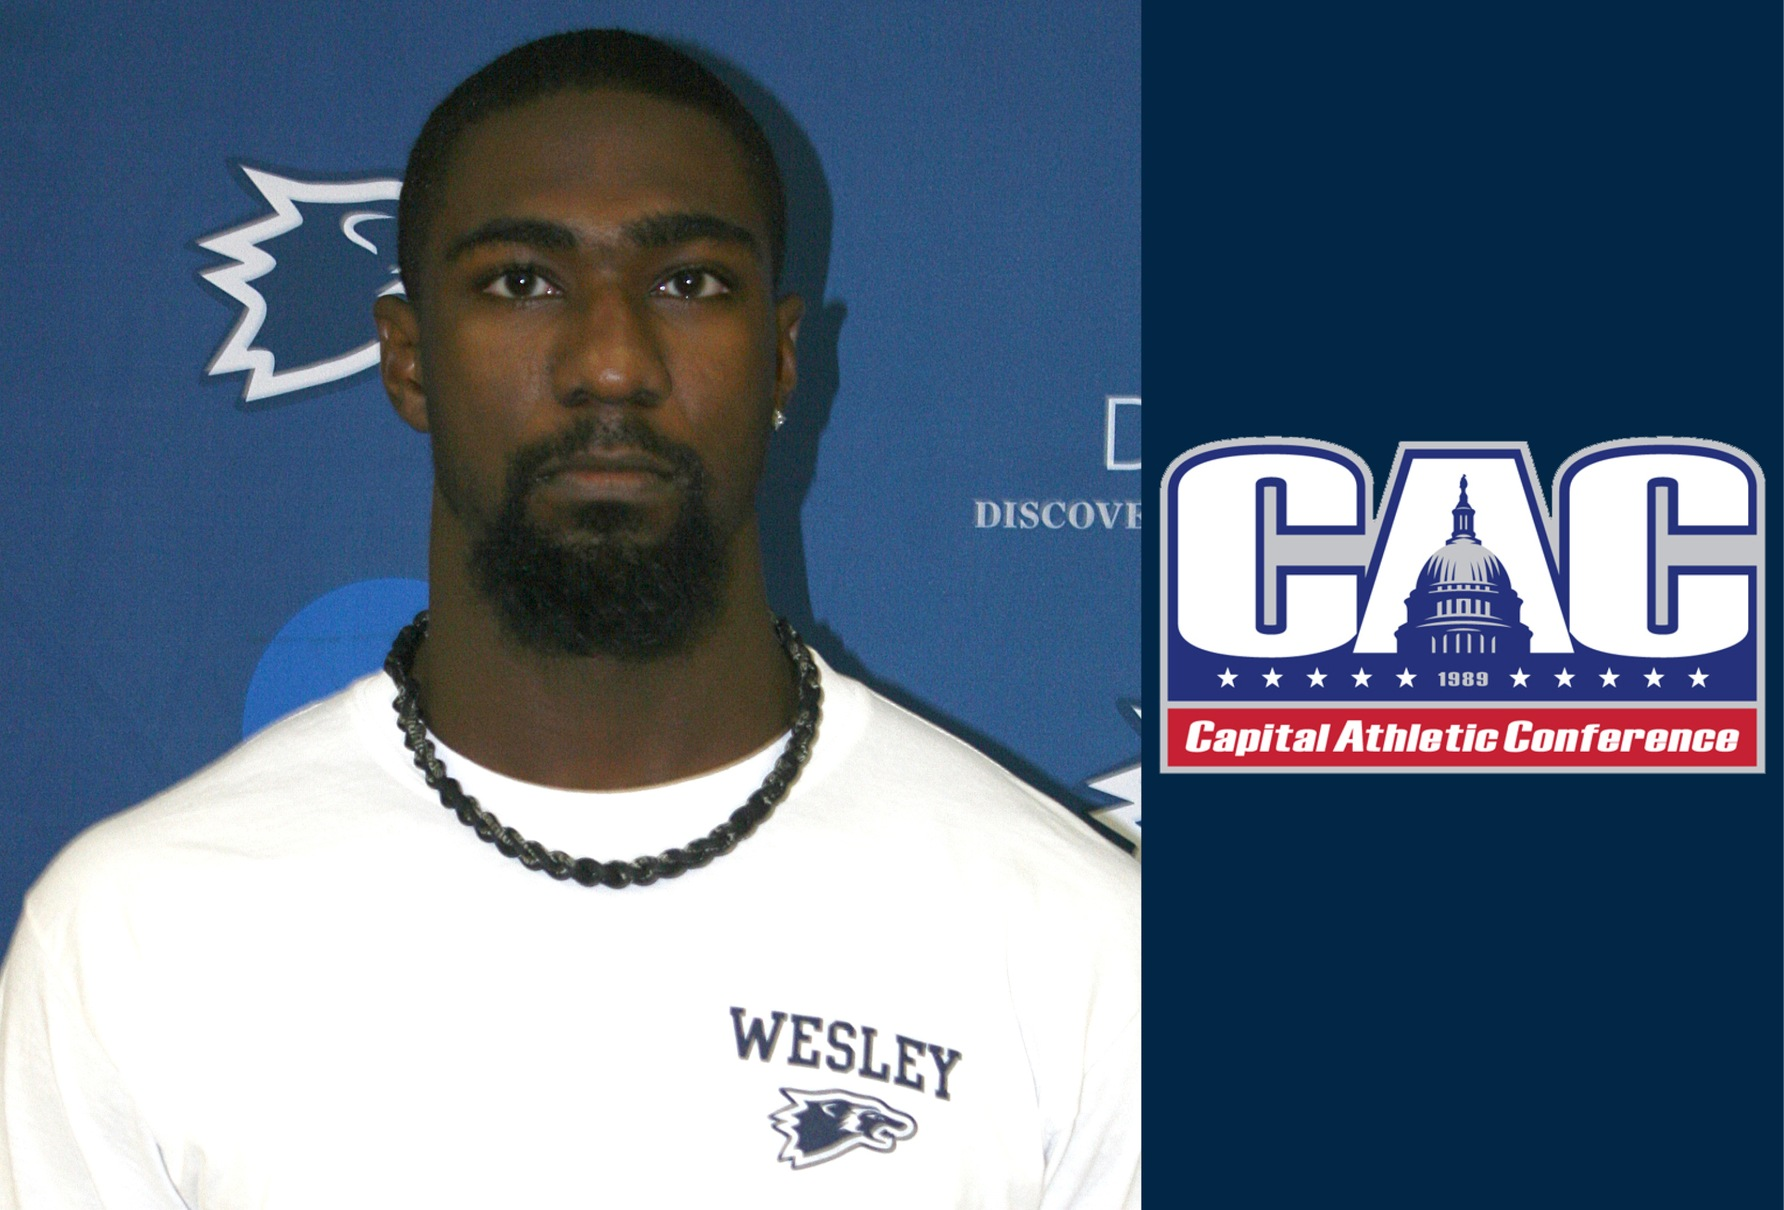 Taylor tabbed CAC Track Athlete of the Week